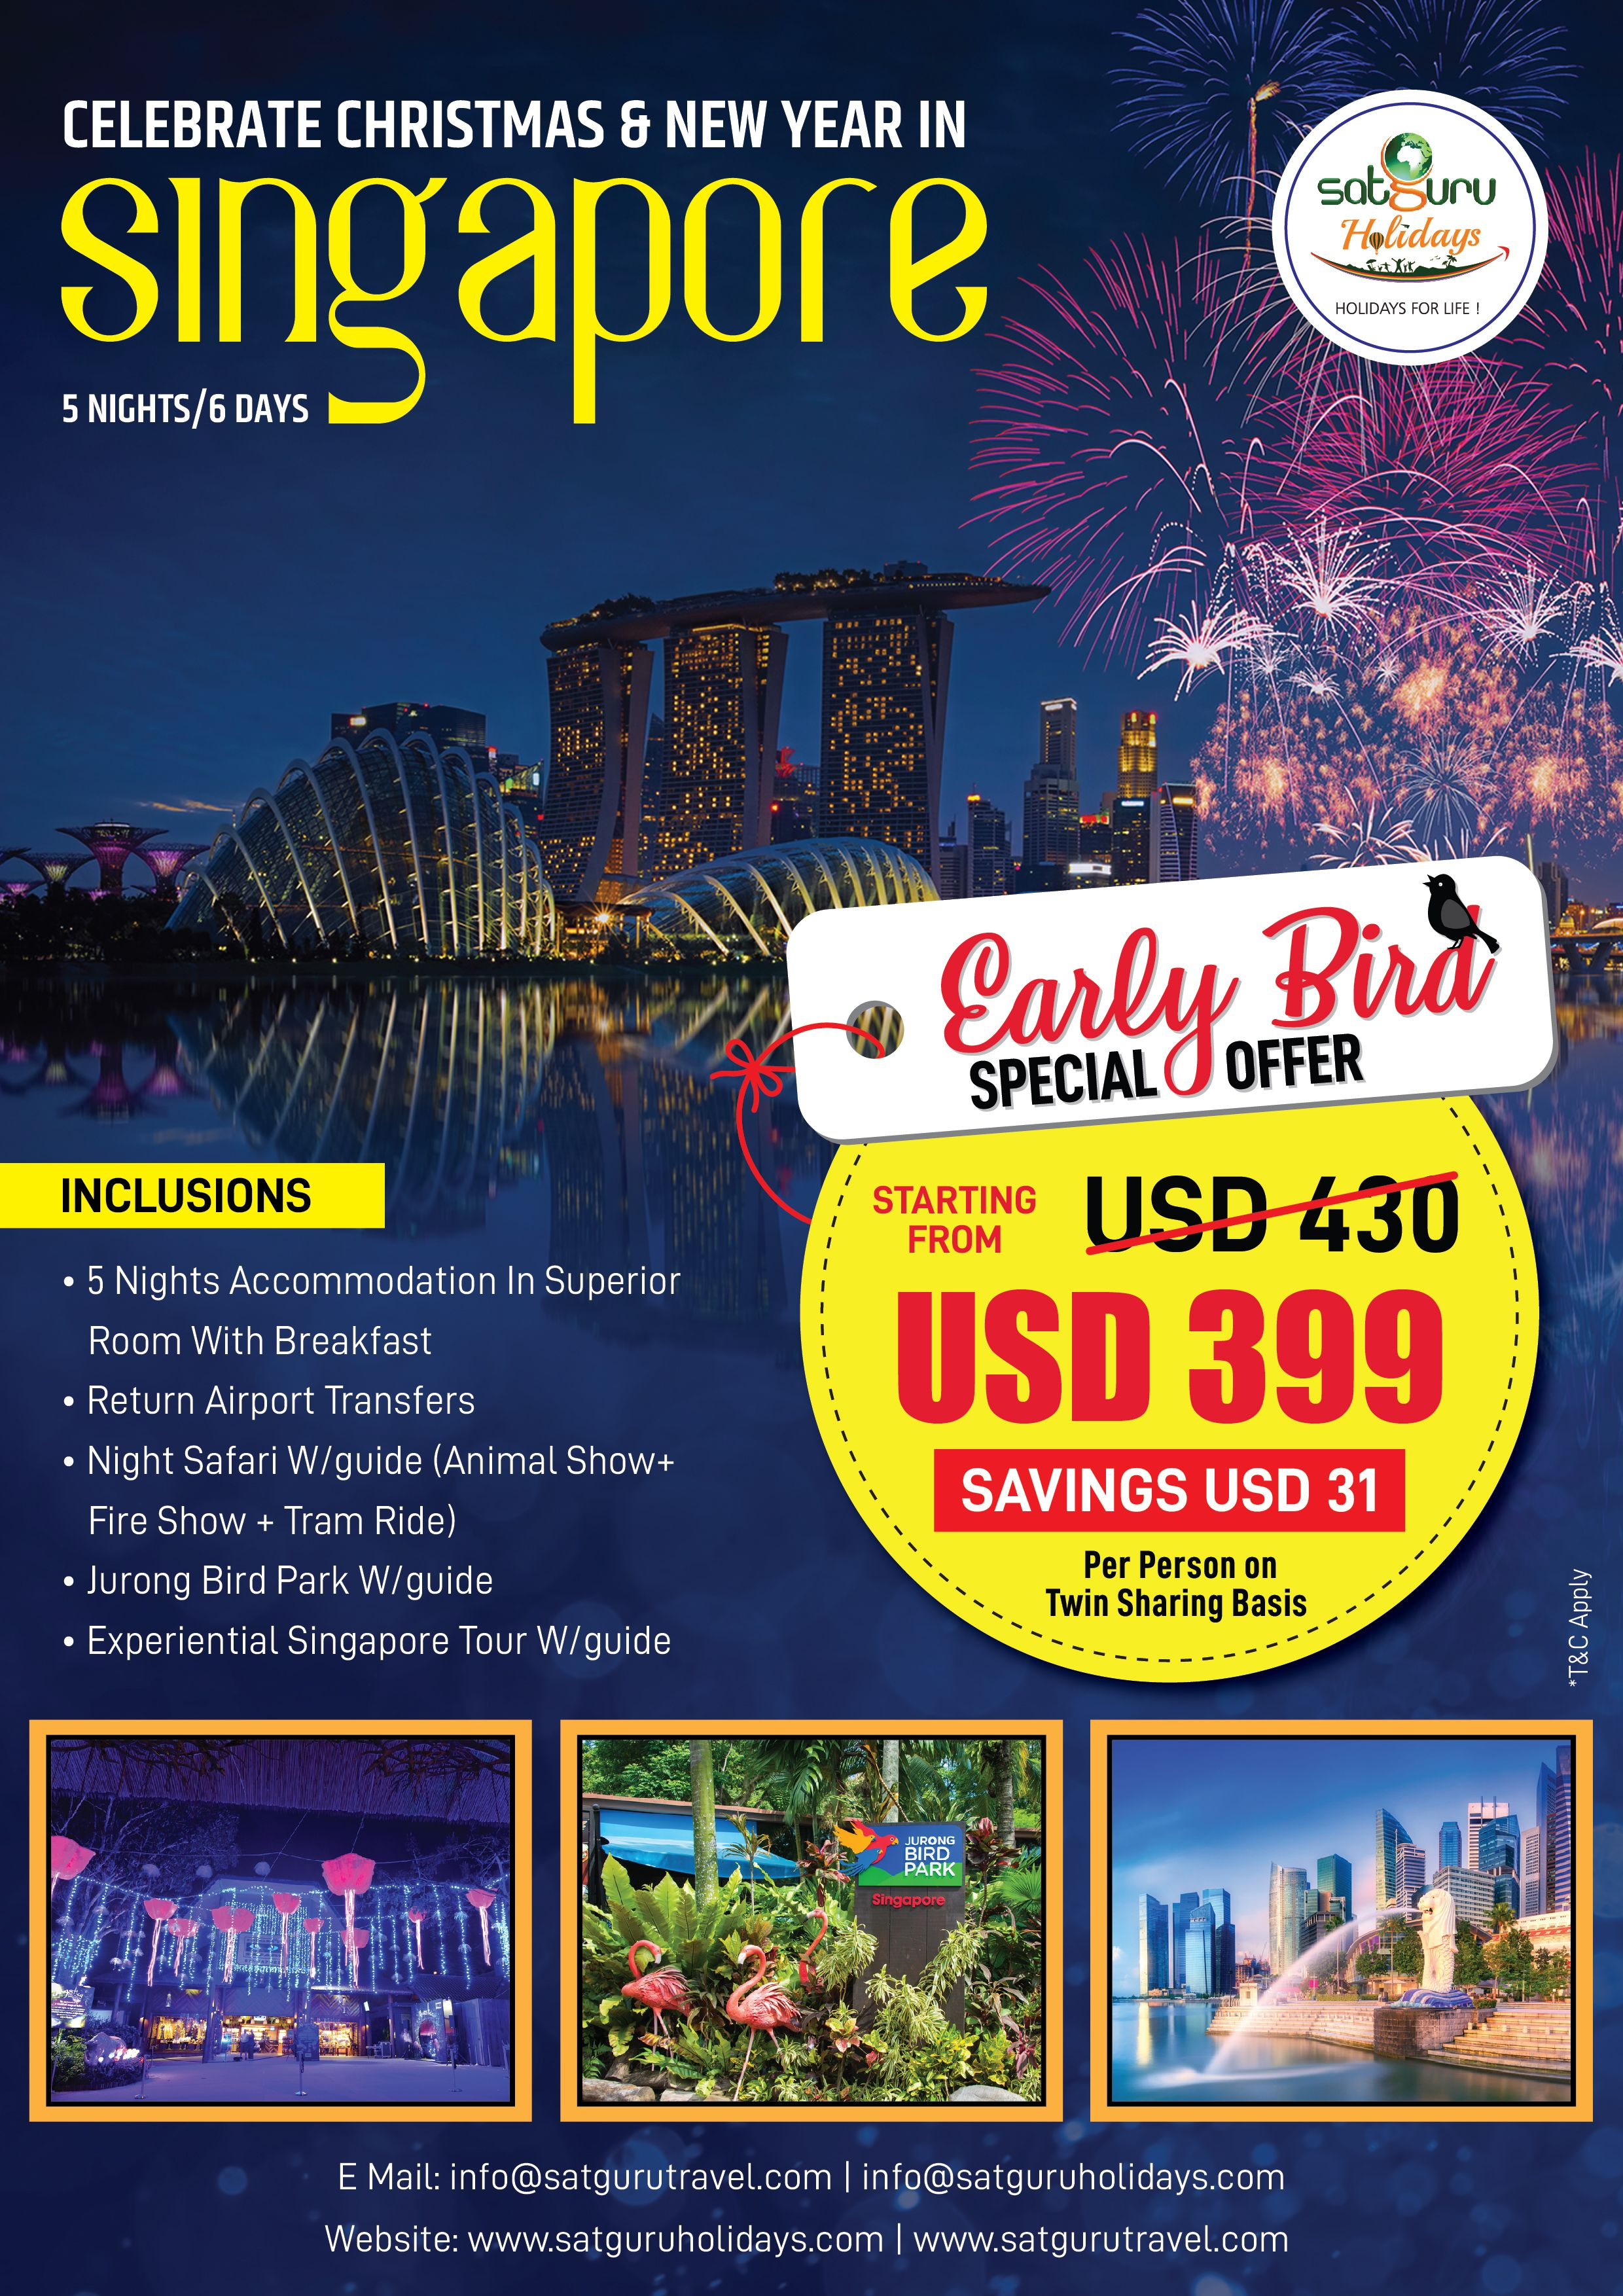 Contact Us (With images) Travel management, New year